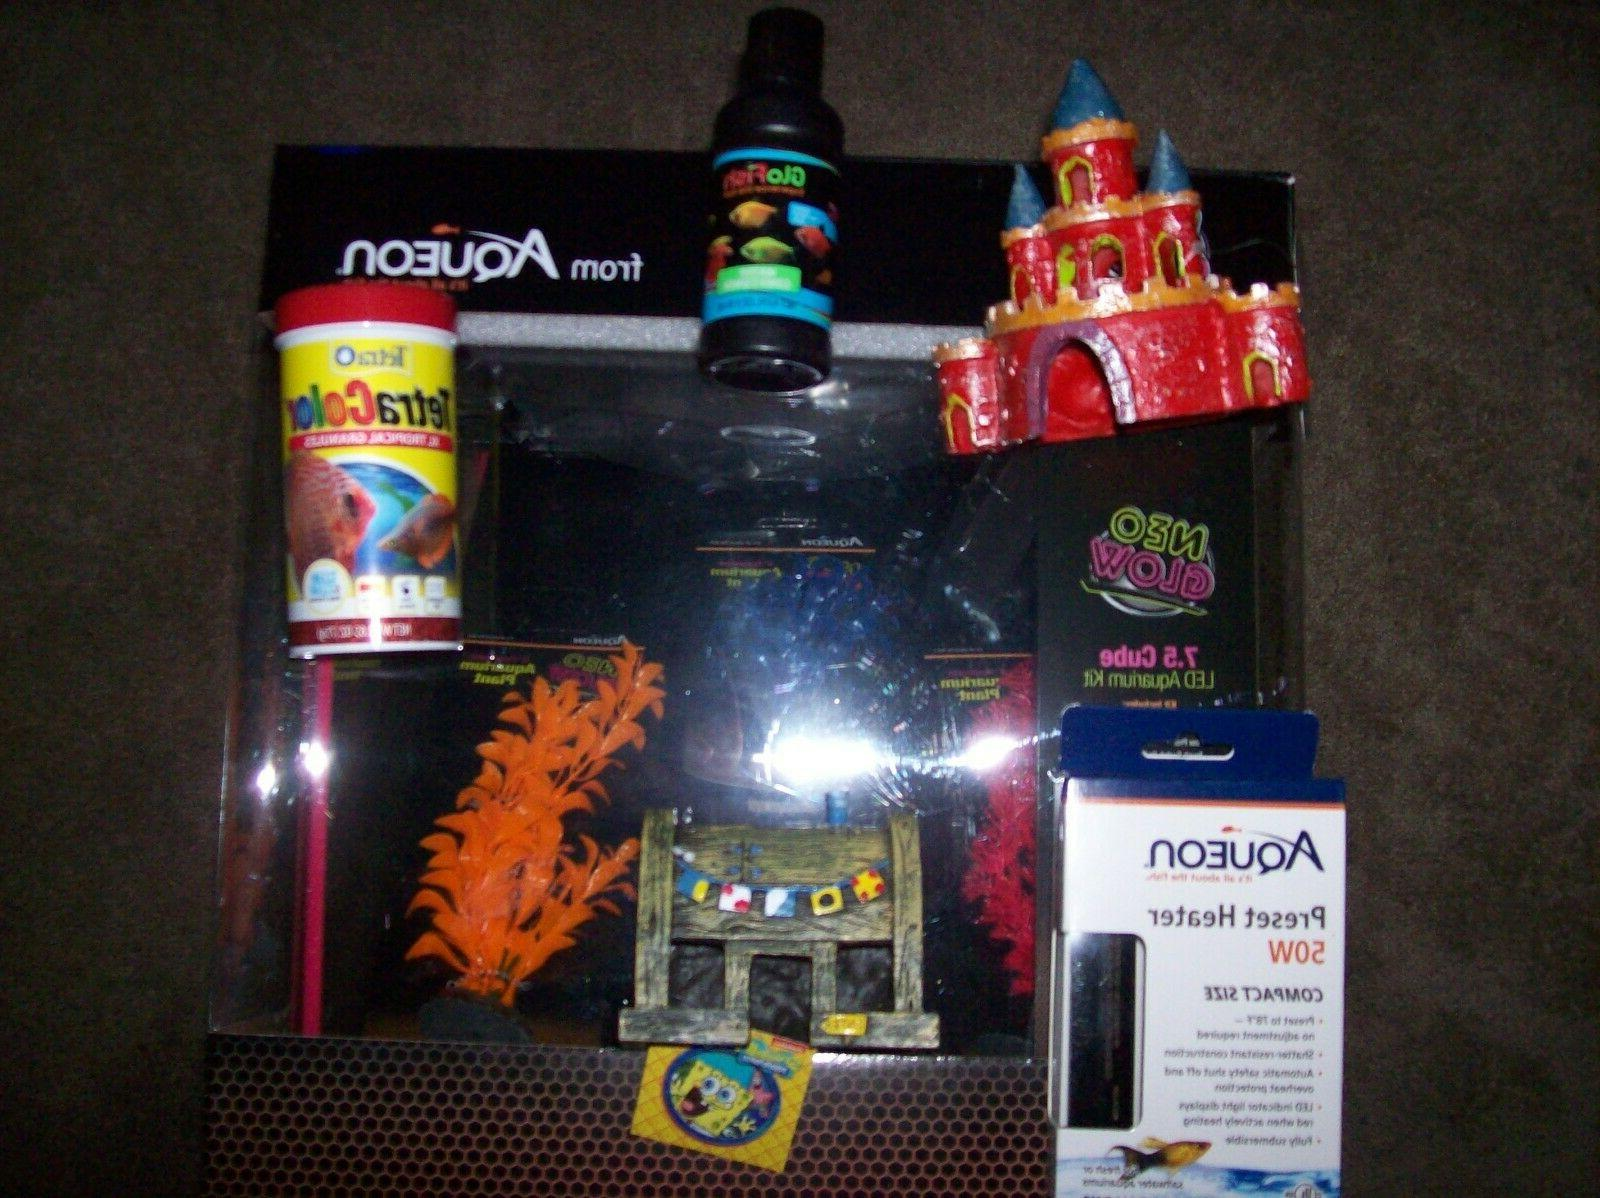 Aqueon Neoglow Aquarium Kit Cube 7.5 gal 50 watt HEATER spon